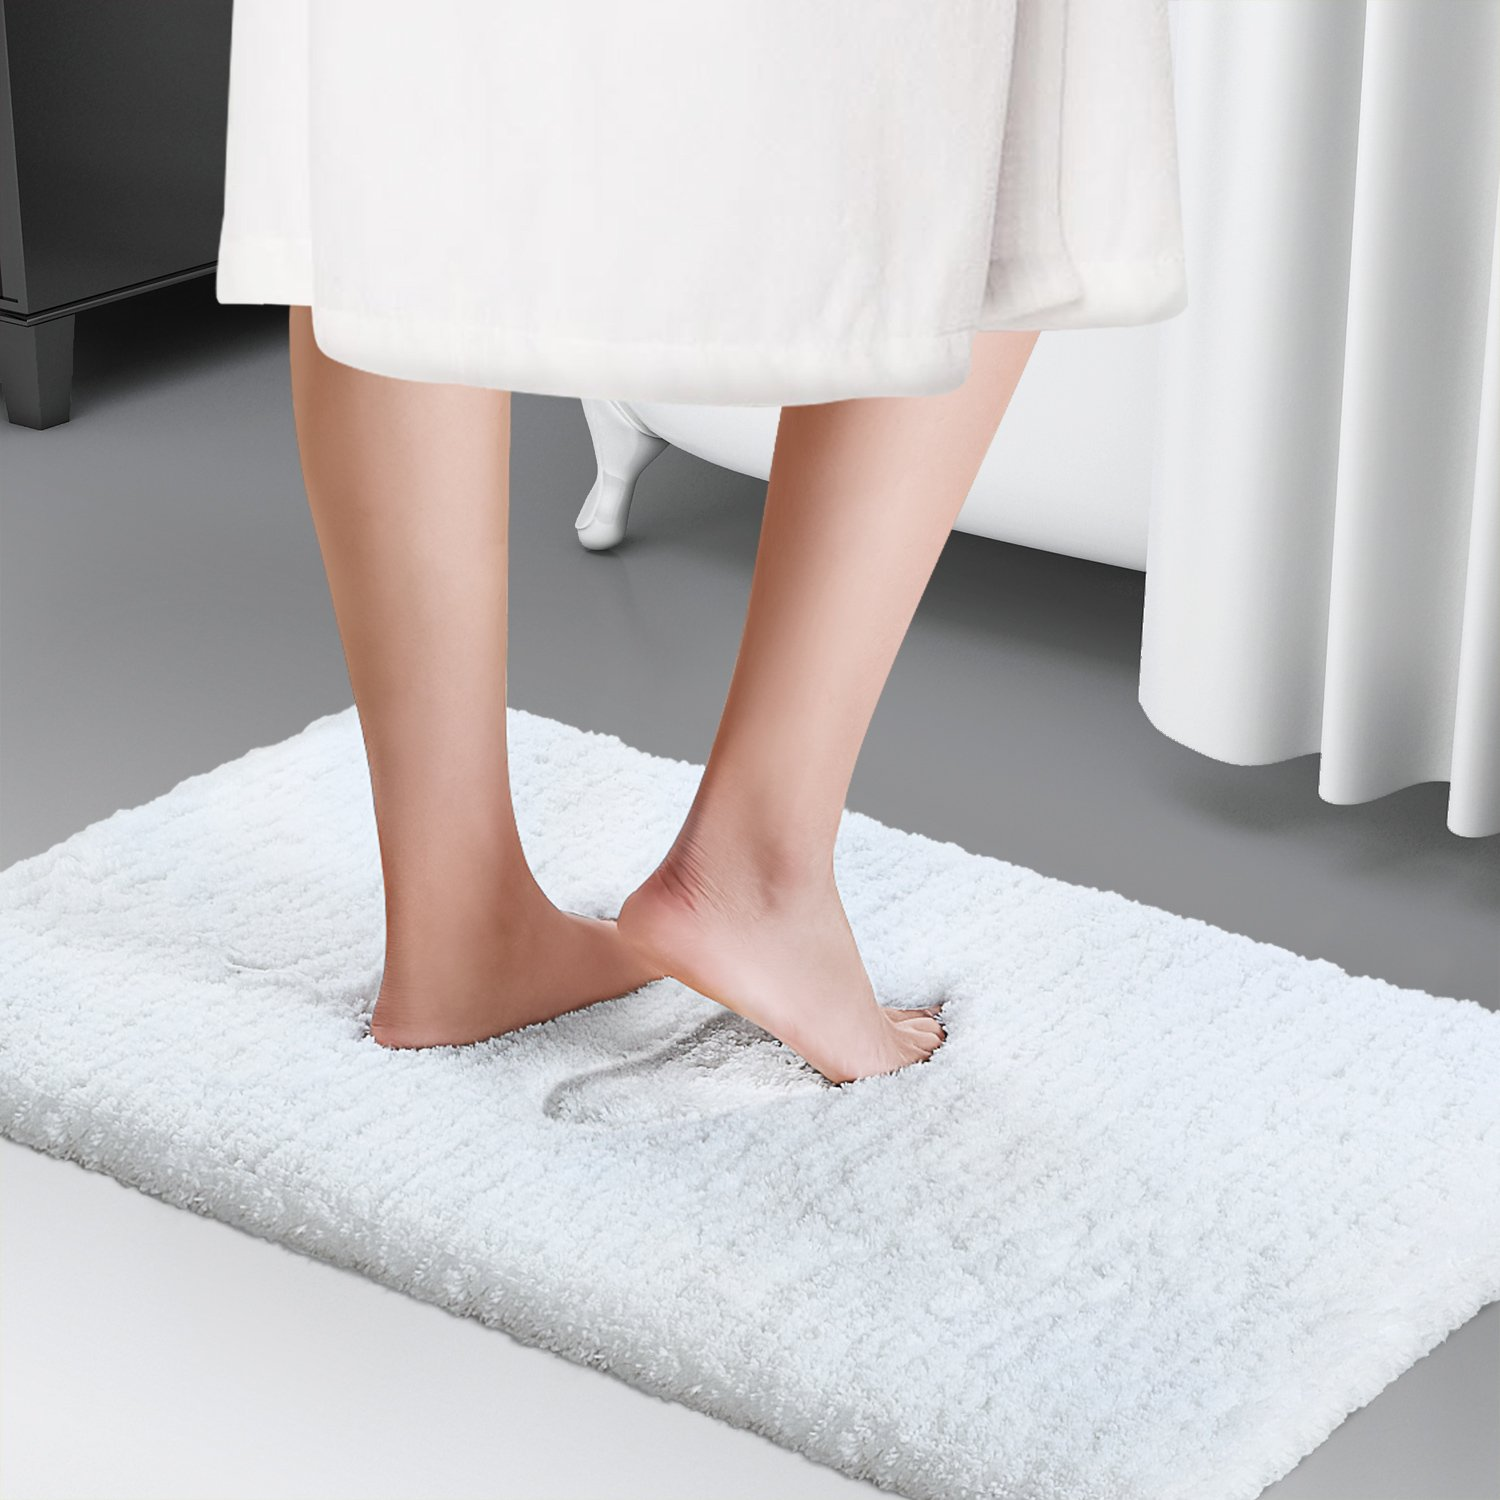 Lifewit Bath Mat White Bathroom Rug Soft Shag Water Absorbent with Non-slip Rubber, 20'' x 32''